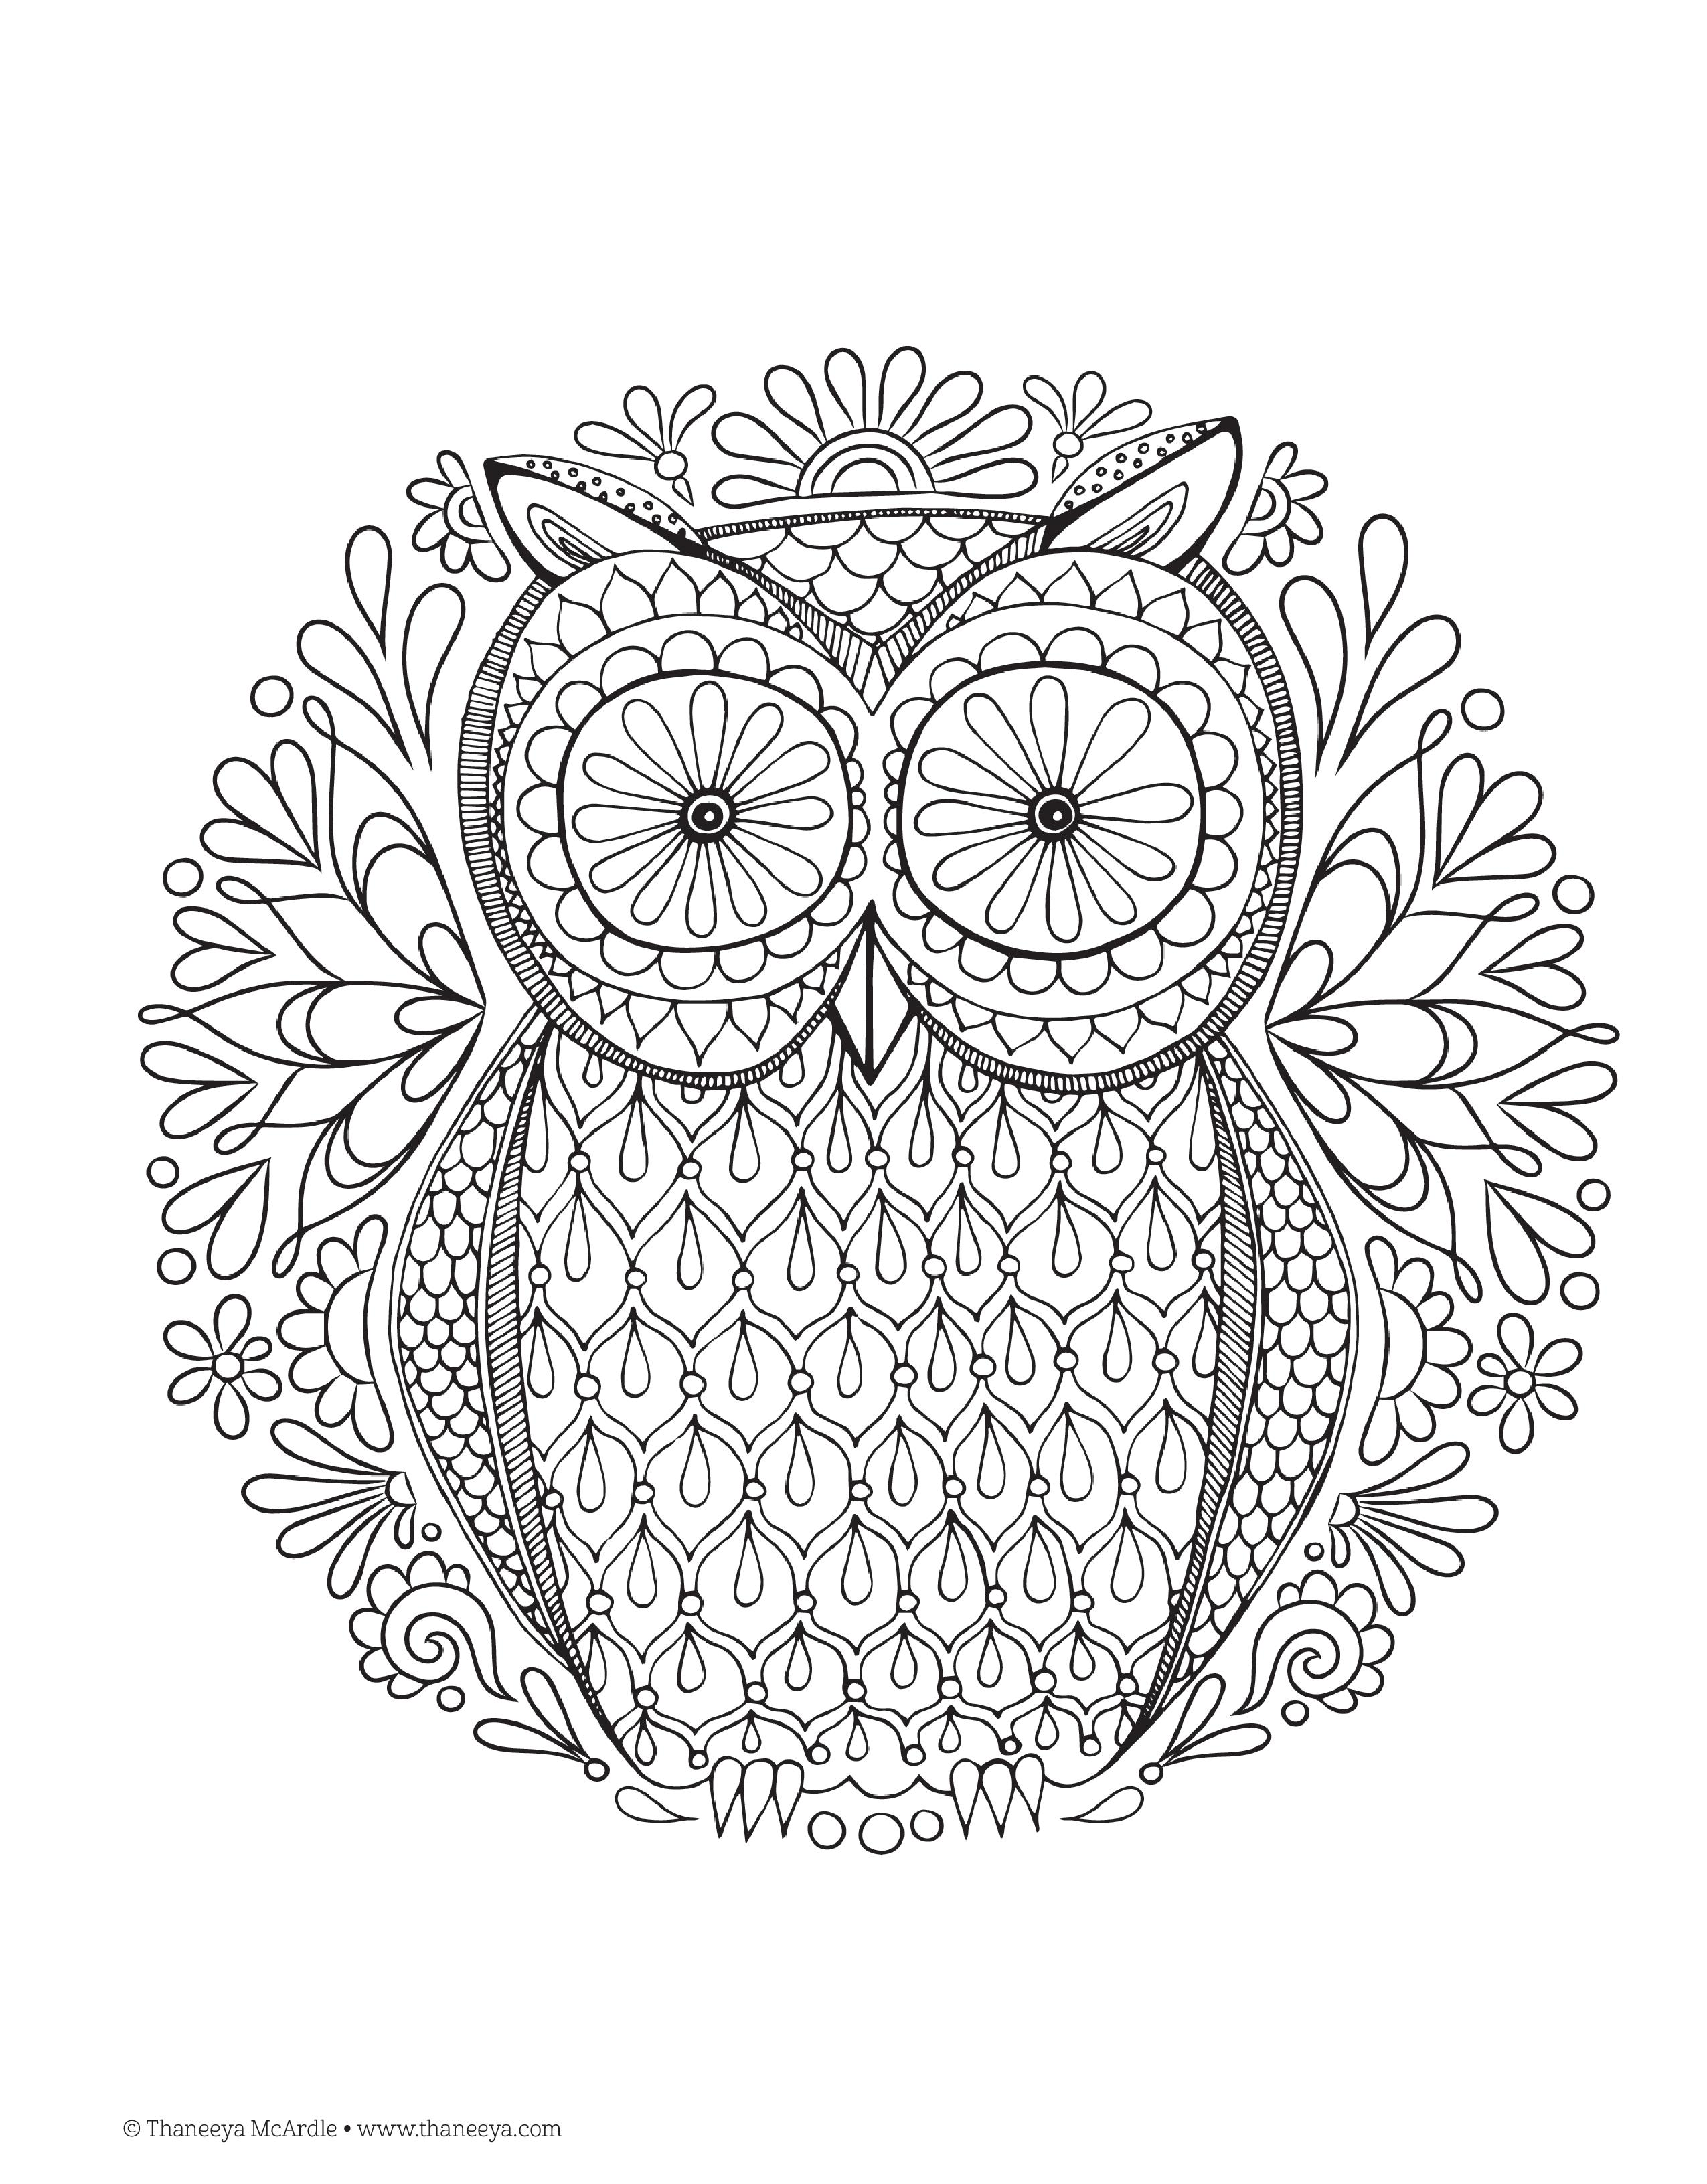 22 Printable Mandala & Abstract Colouring Pages For ...